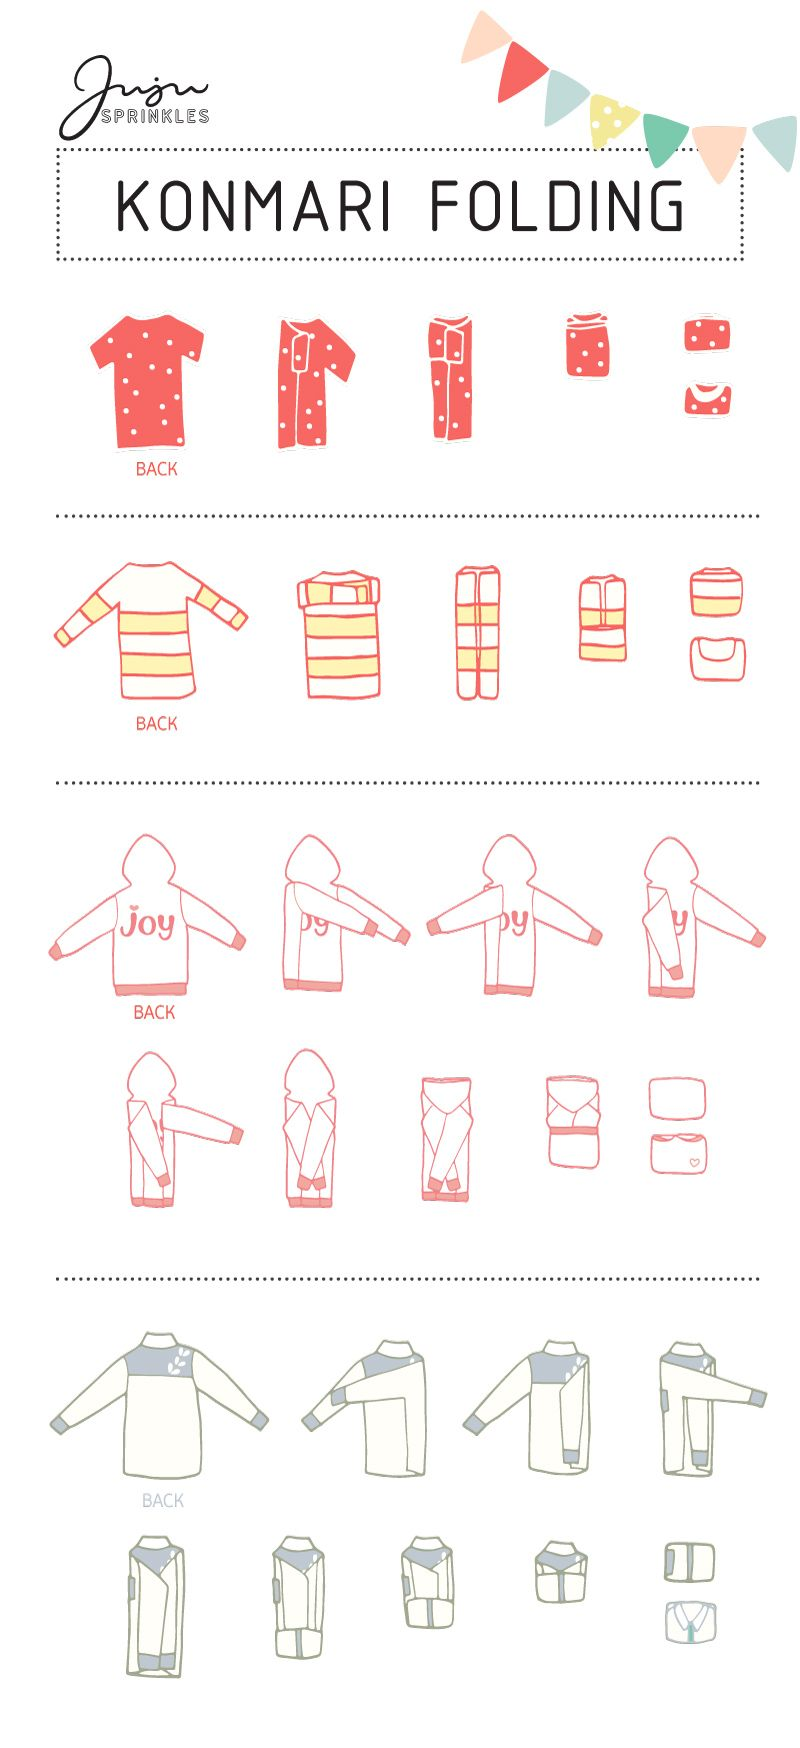 Everything You Ever Need To Know About KonMari Folding - Juju Sprinkles